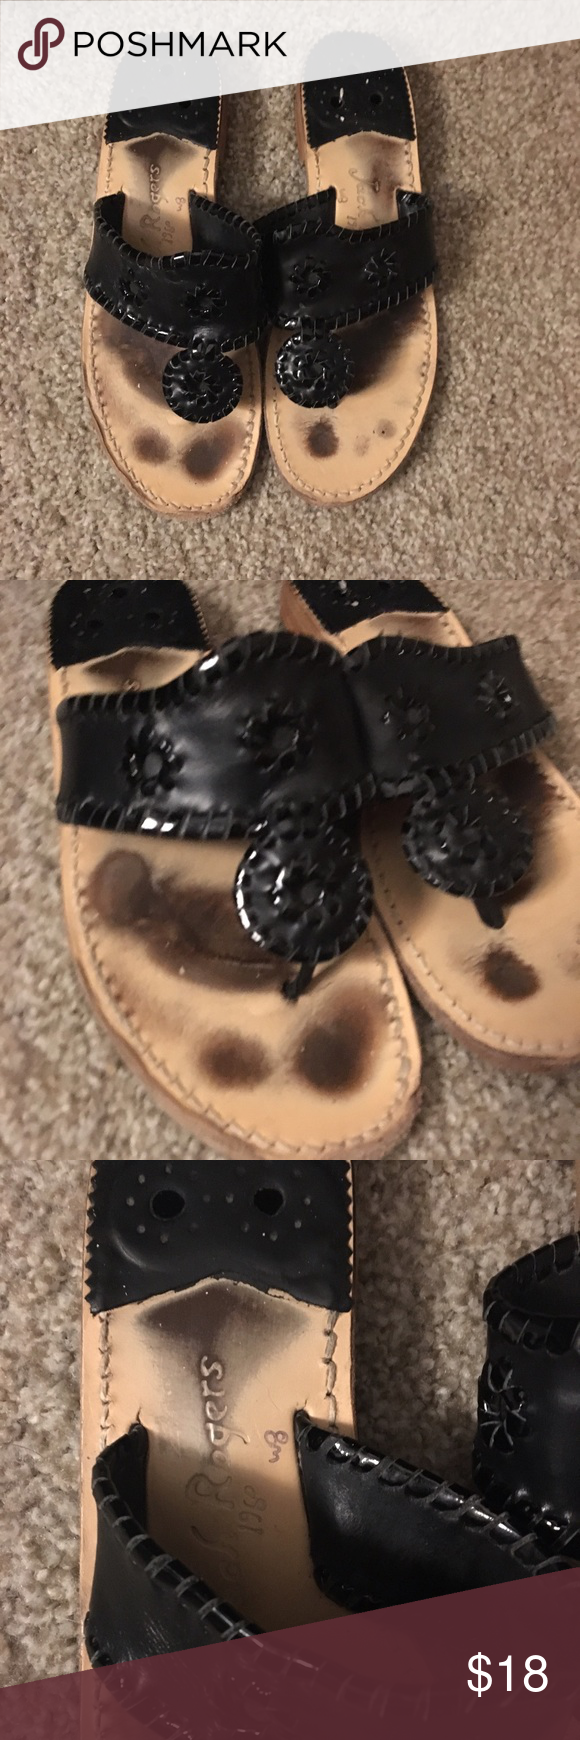 Gently Used Jack Rogers Black Hampton Sandal Gently Used Jack Rogers Black Hampton Sandal. Super cute. Obvious signs of wear on footbed. Soles and heels do show signs of wear (please see pictures). Jack Rogers Shoes Sandals